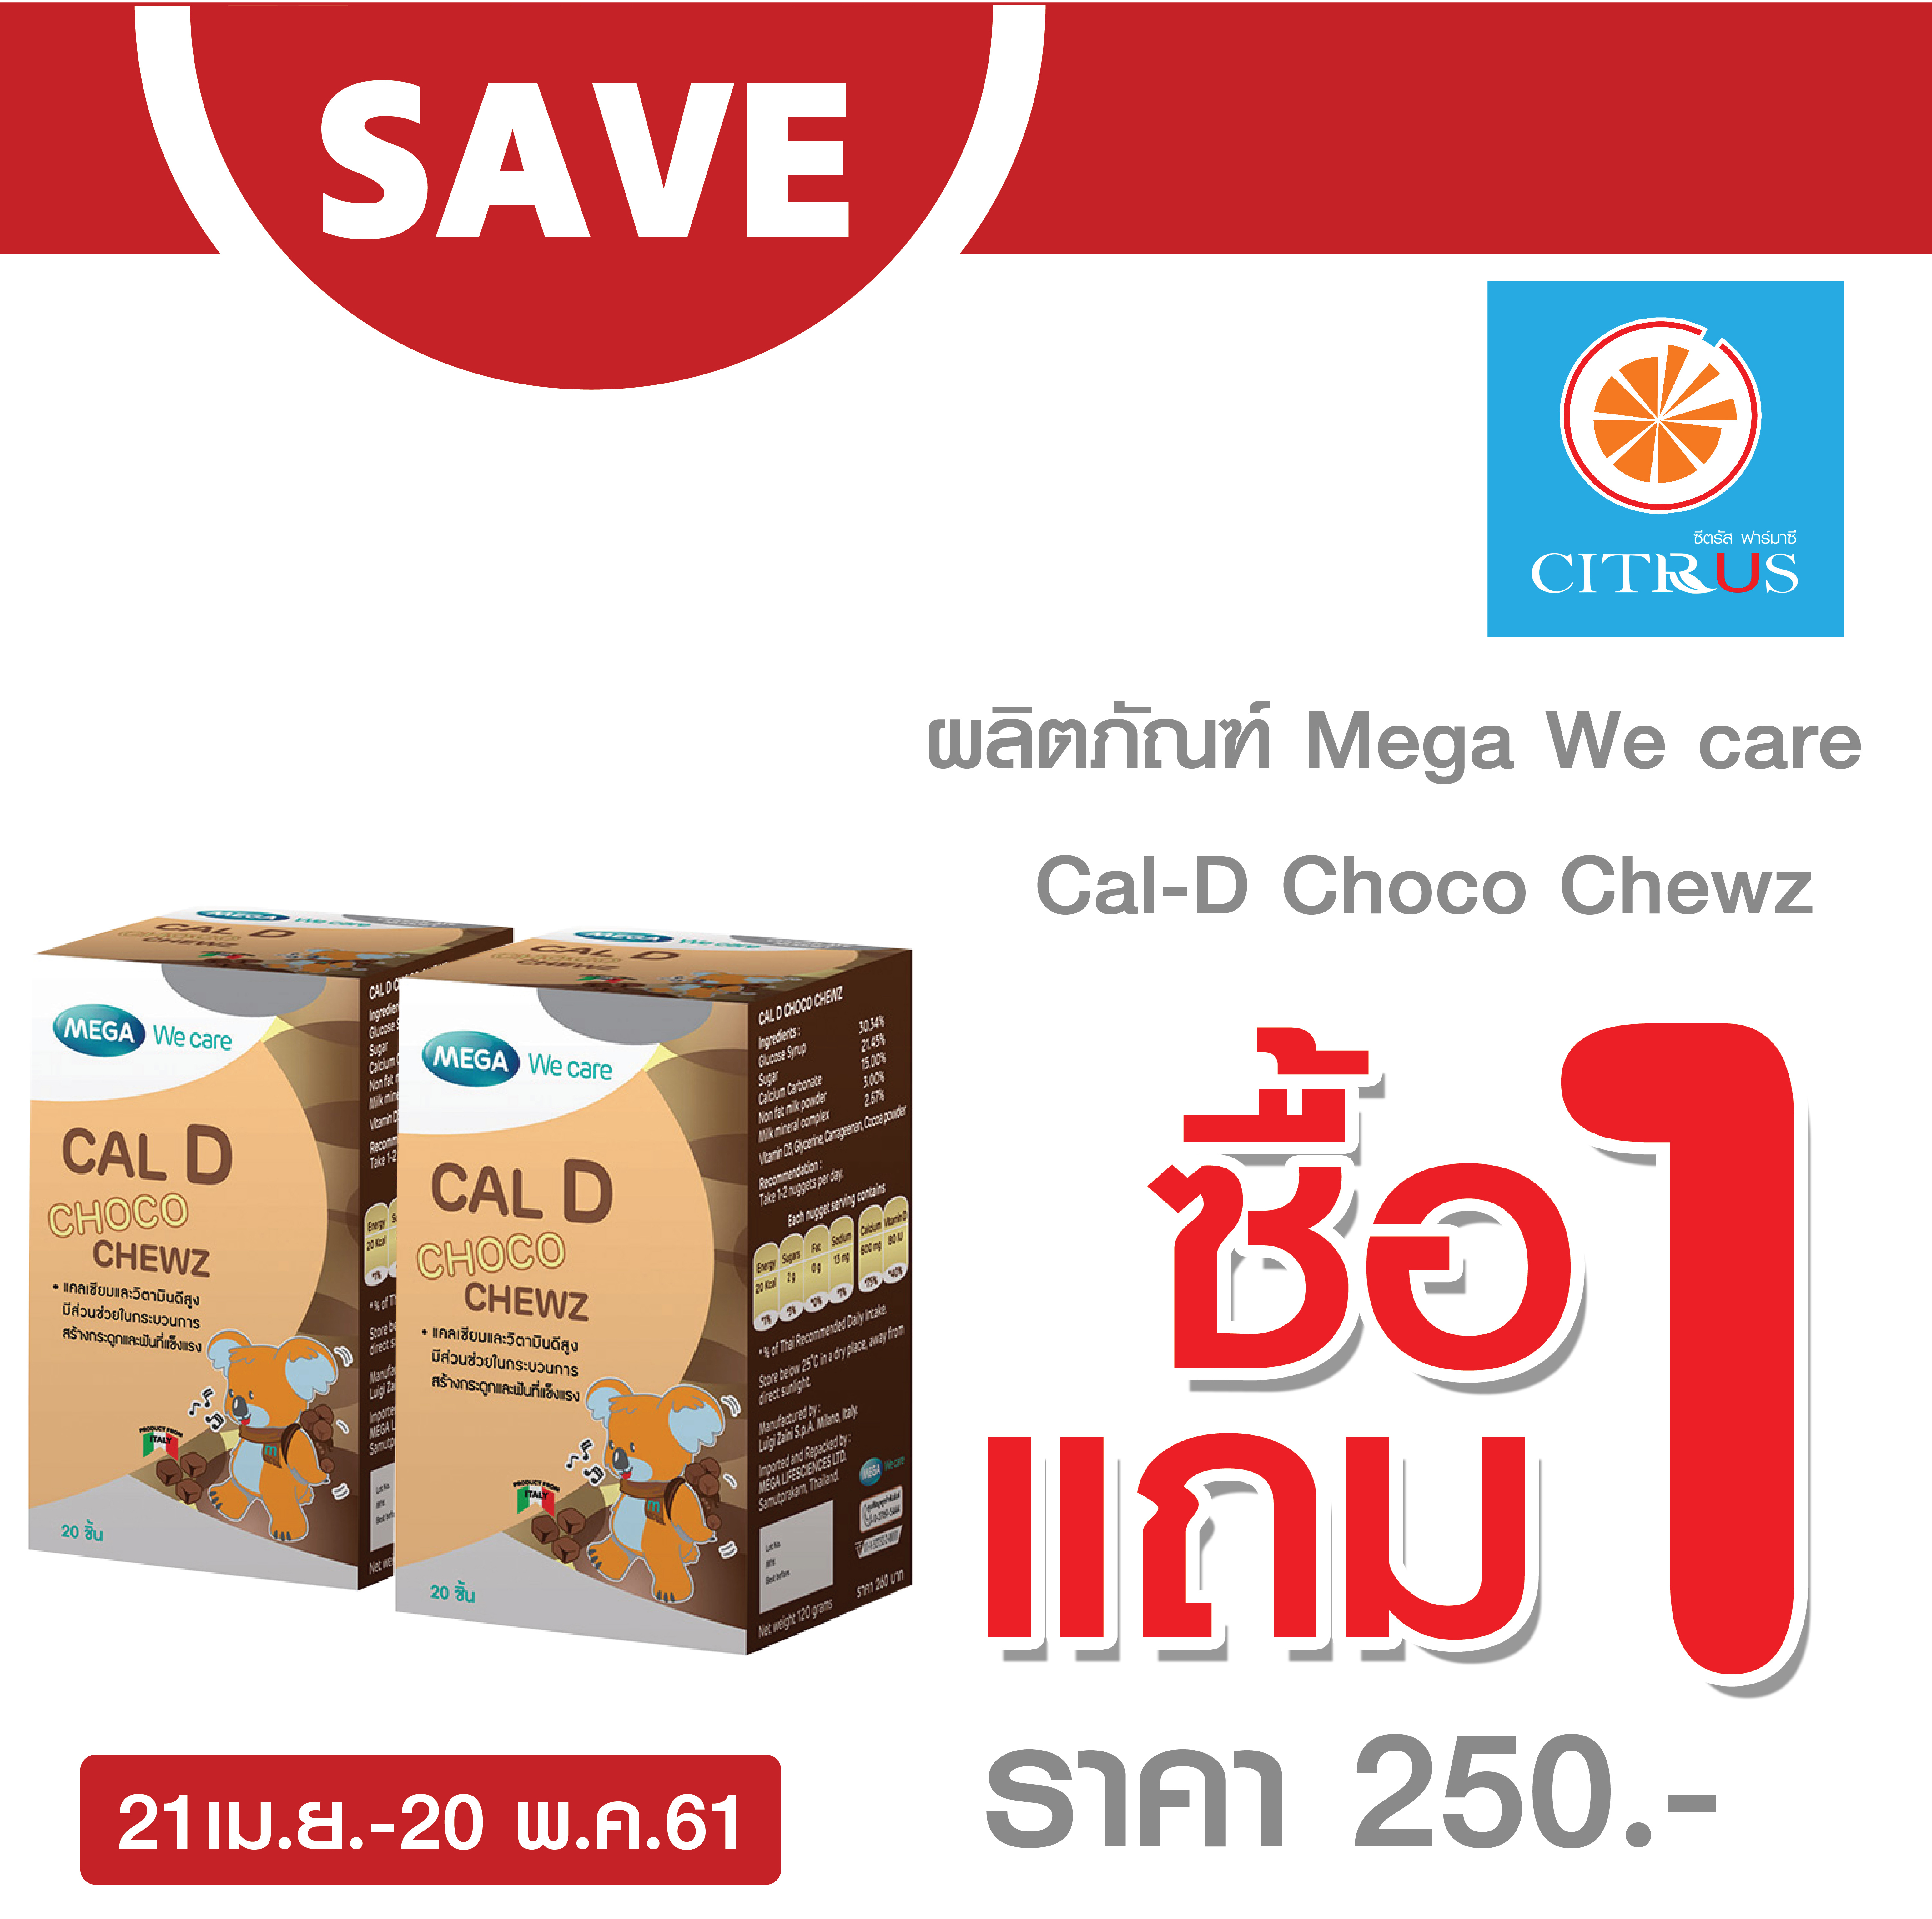 Mega We care Cal-D Choco Chewz